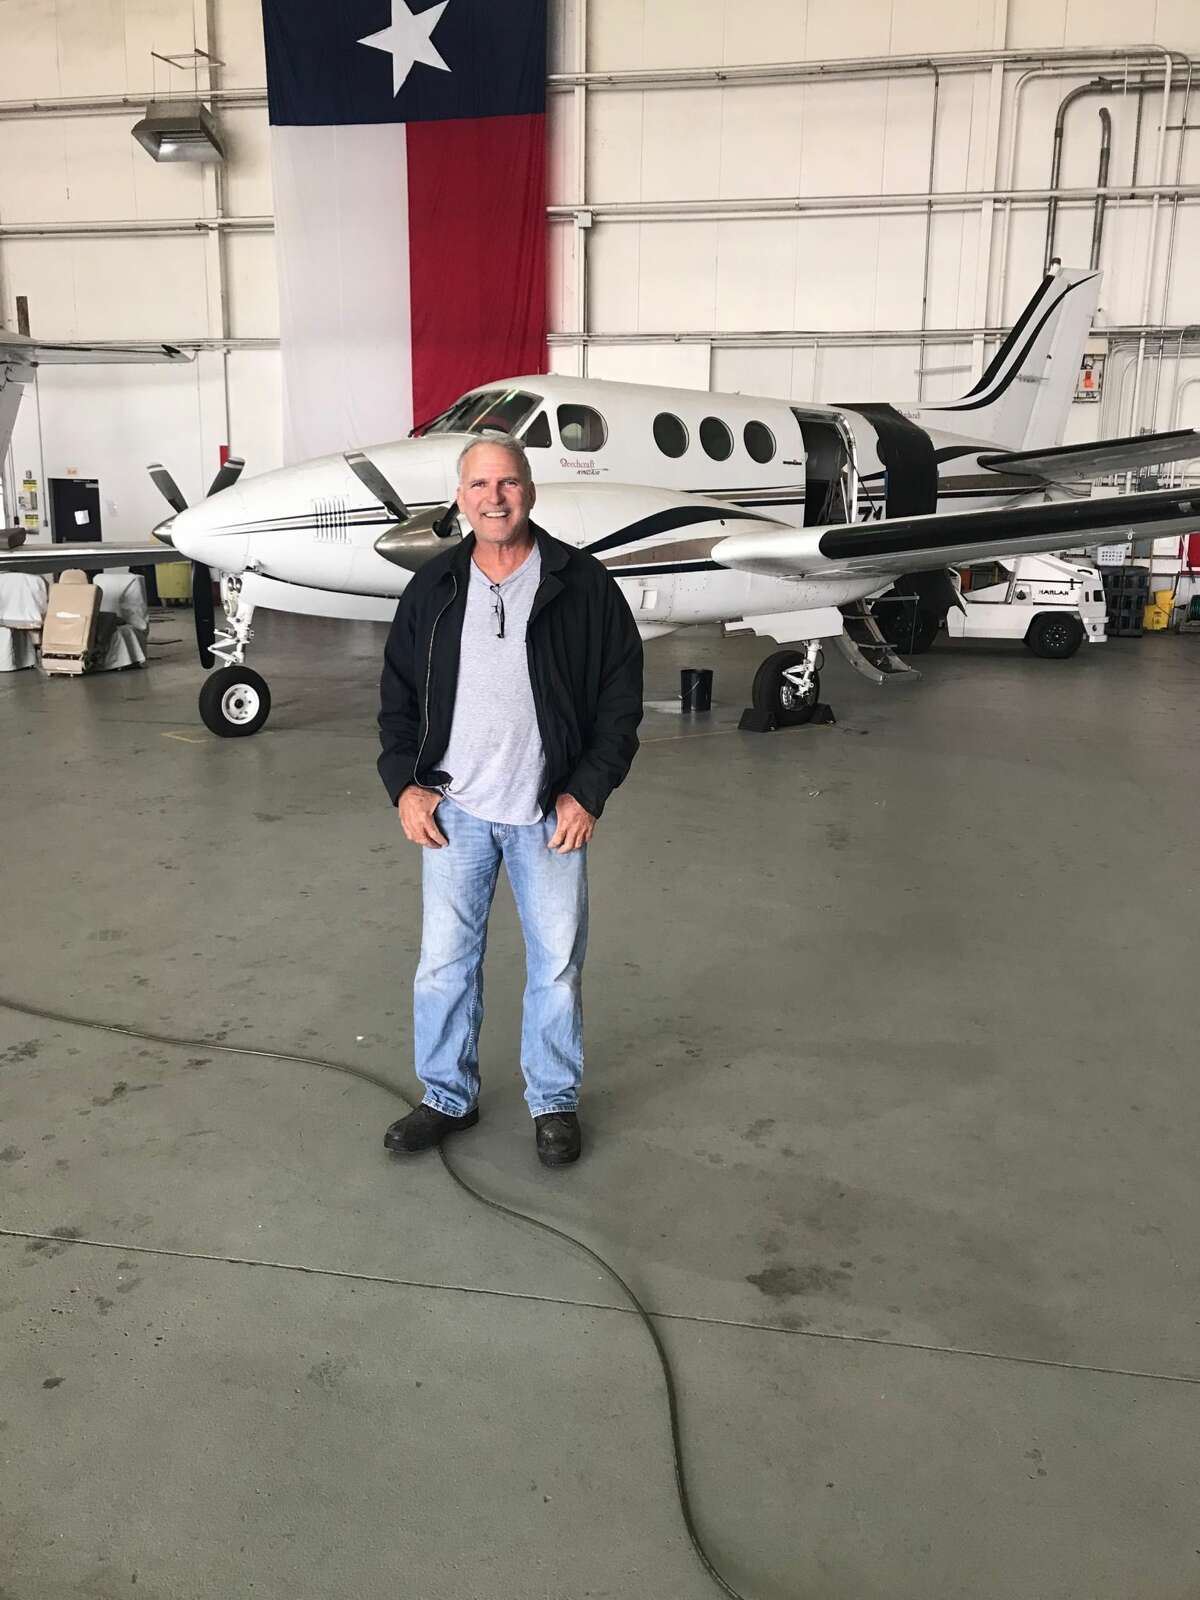 Pilot Jim MacIVOR lives in the Zuehl Airport Flying Community in Marion, Texas.